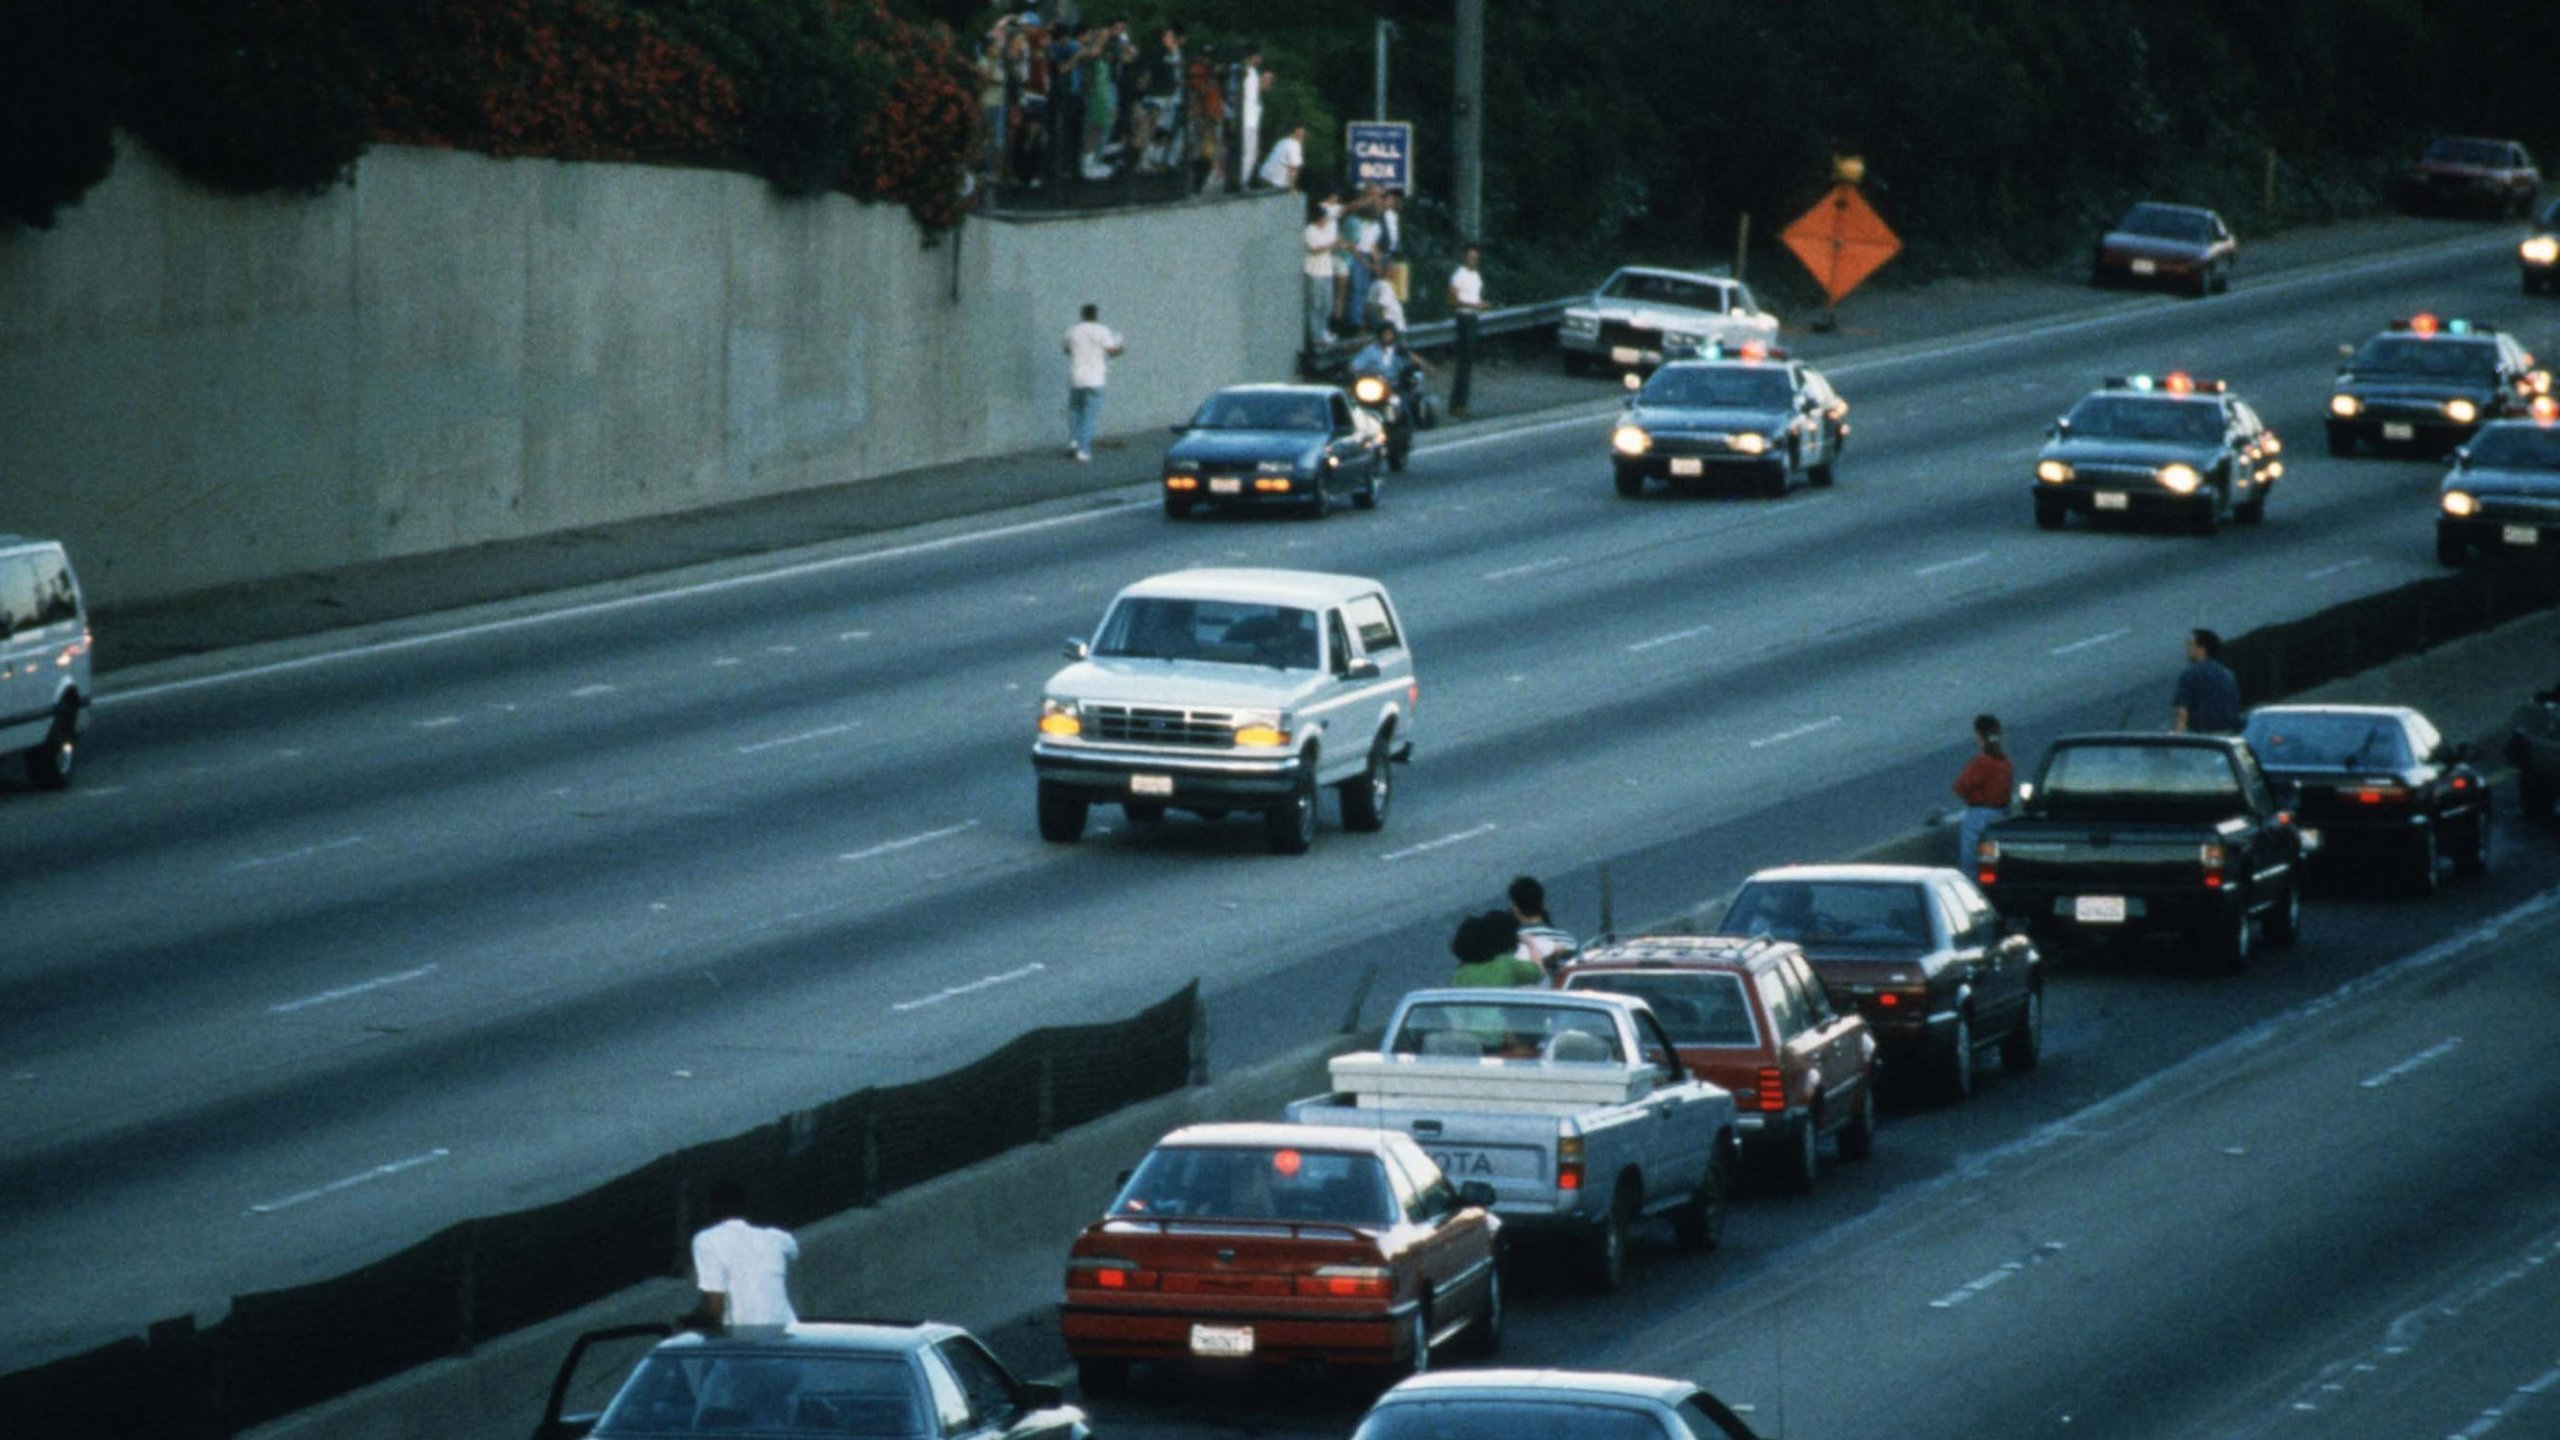 Motorists stop and wave as police cars pursue the white Ford Bronco on June 17, 1994. (Credit: Jean-Marc Giboux/Liason/Getty)